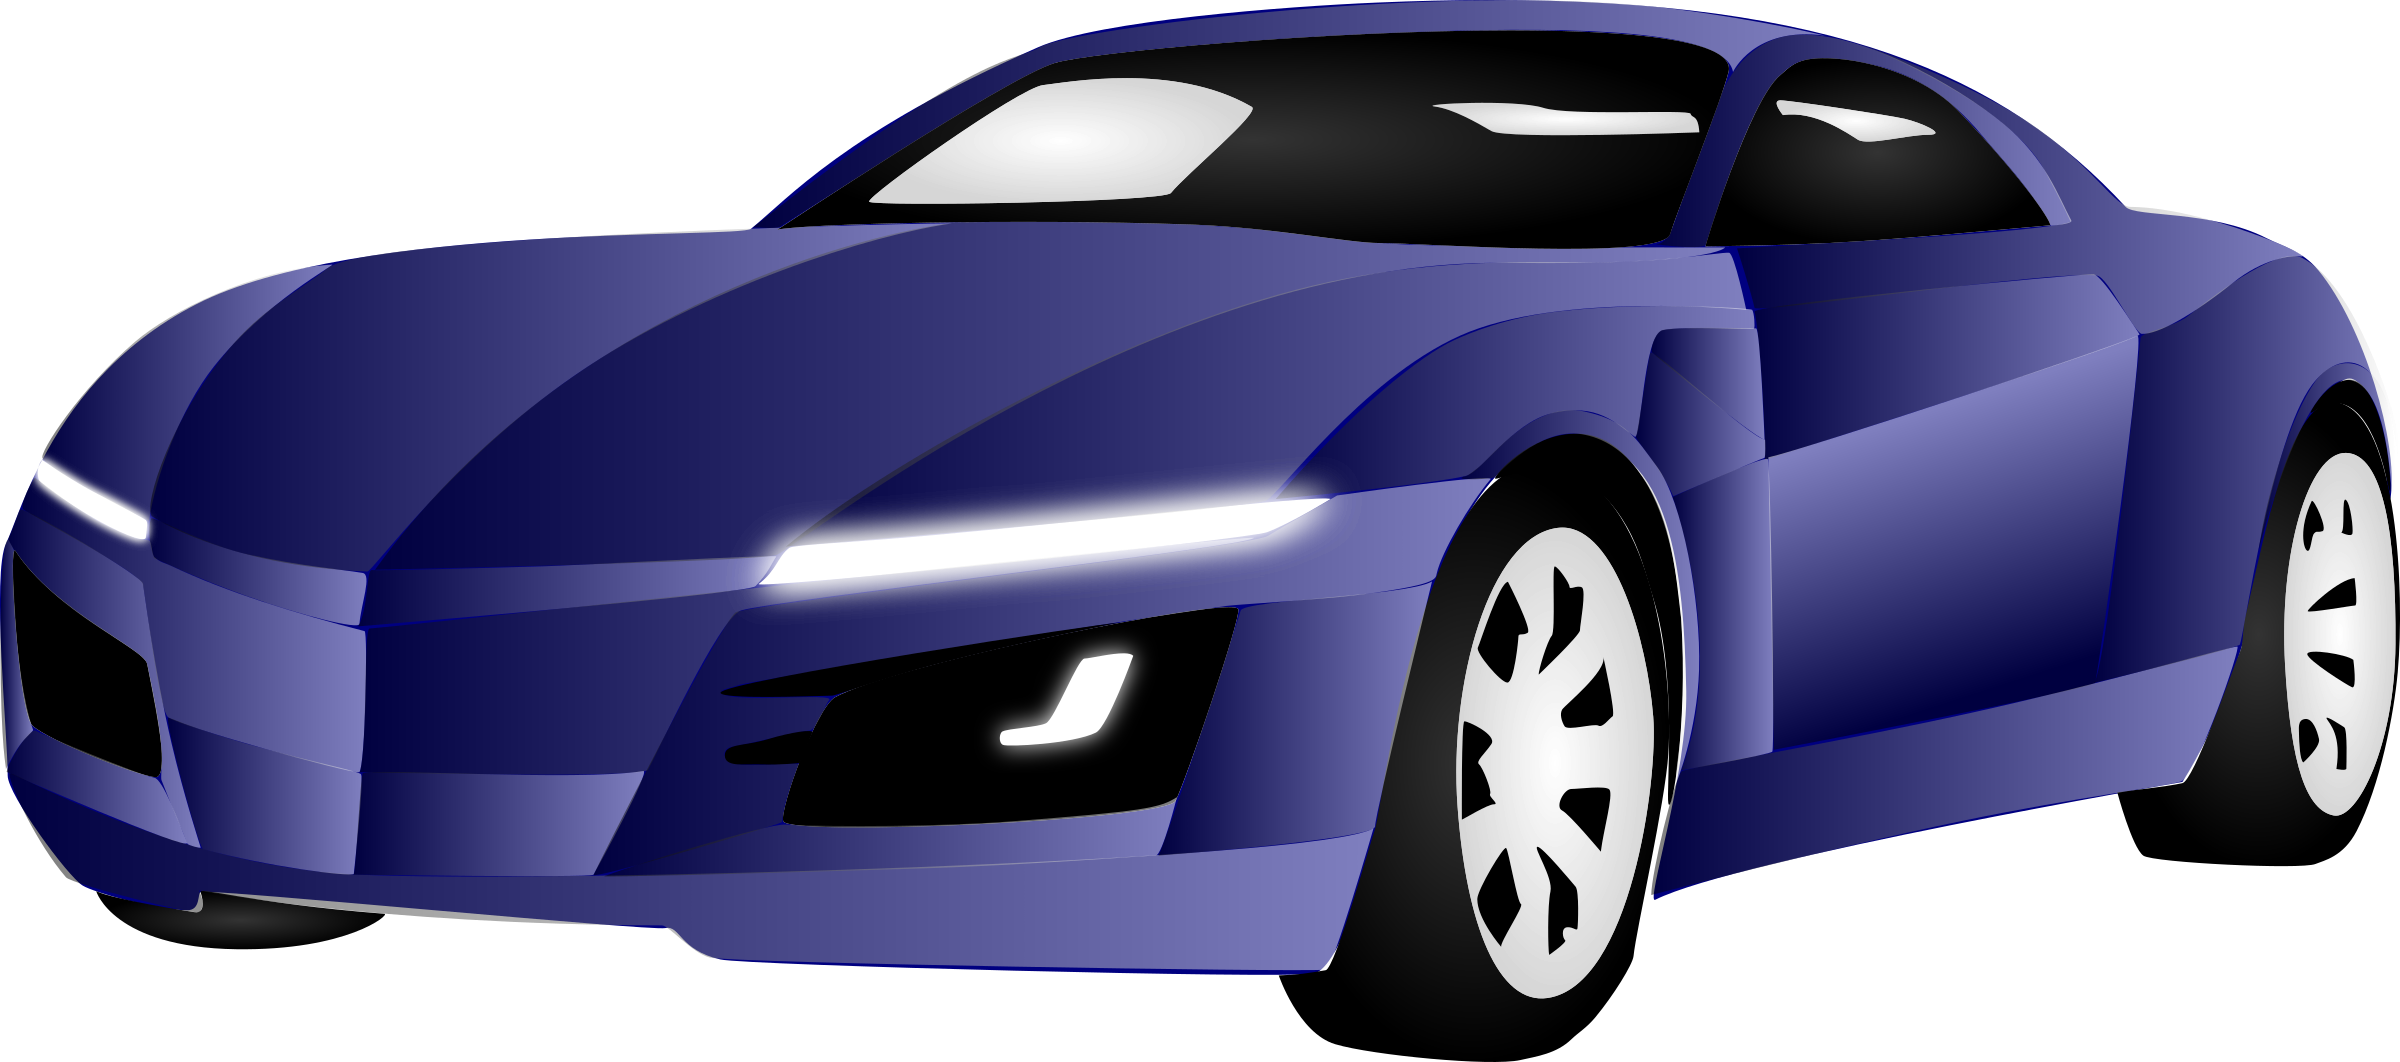 Car with hood open clipart picture transparent Sports car Clip art - car cartoon 2400*1062 transprent Png Free ... picture transparent